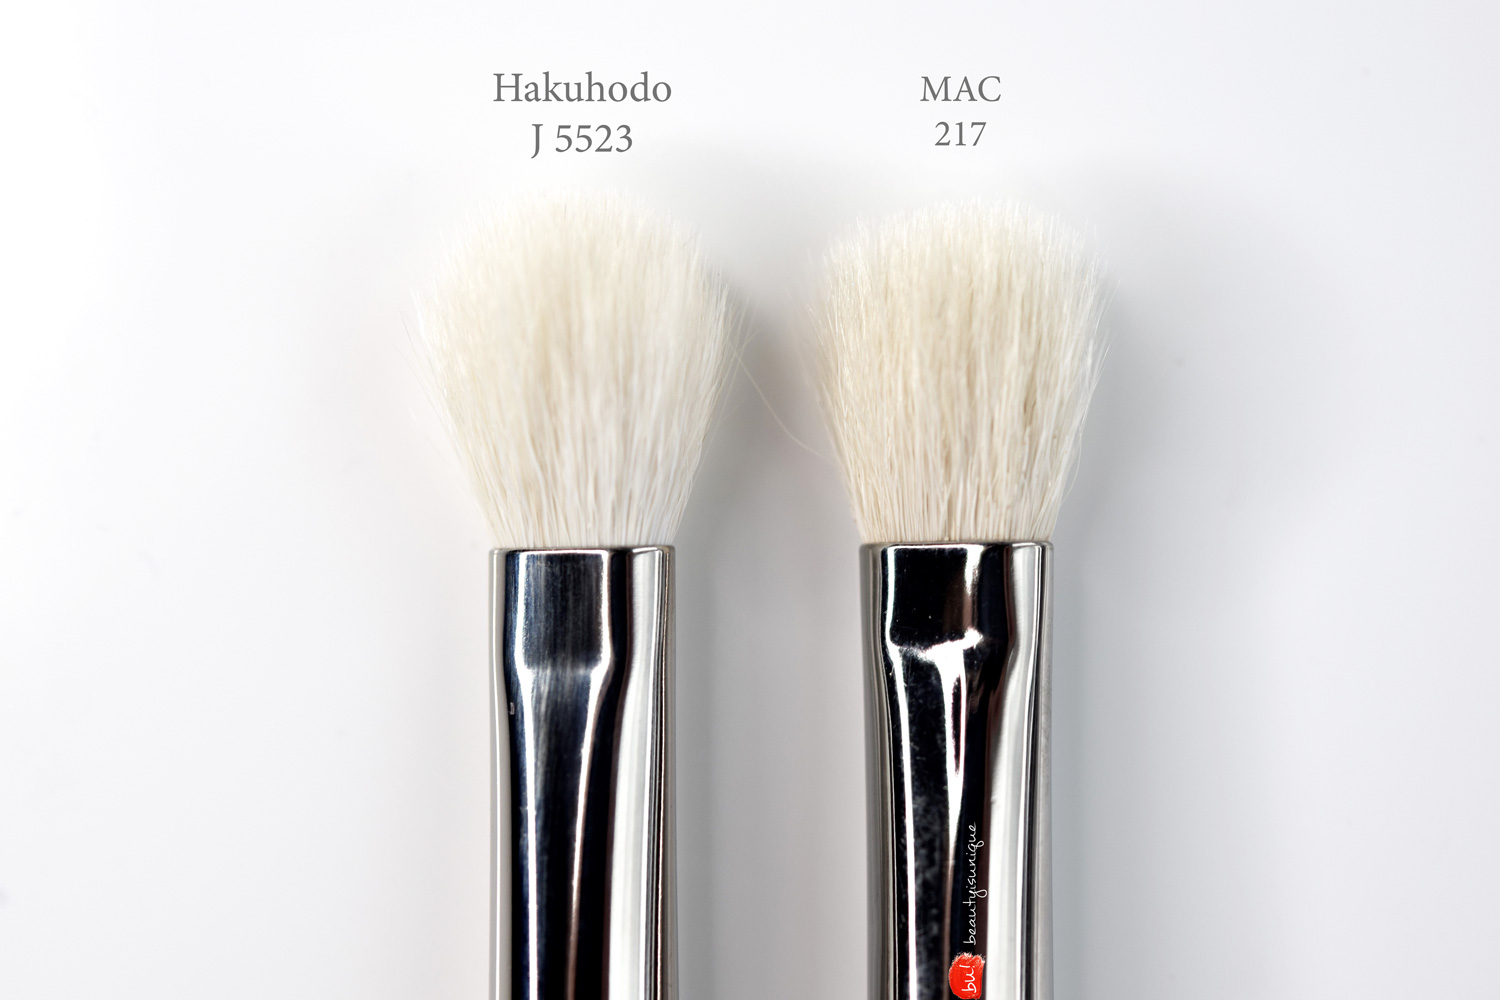 Hakuhodo-J5523-vs-mac-219